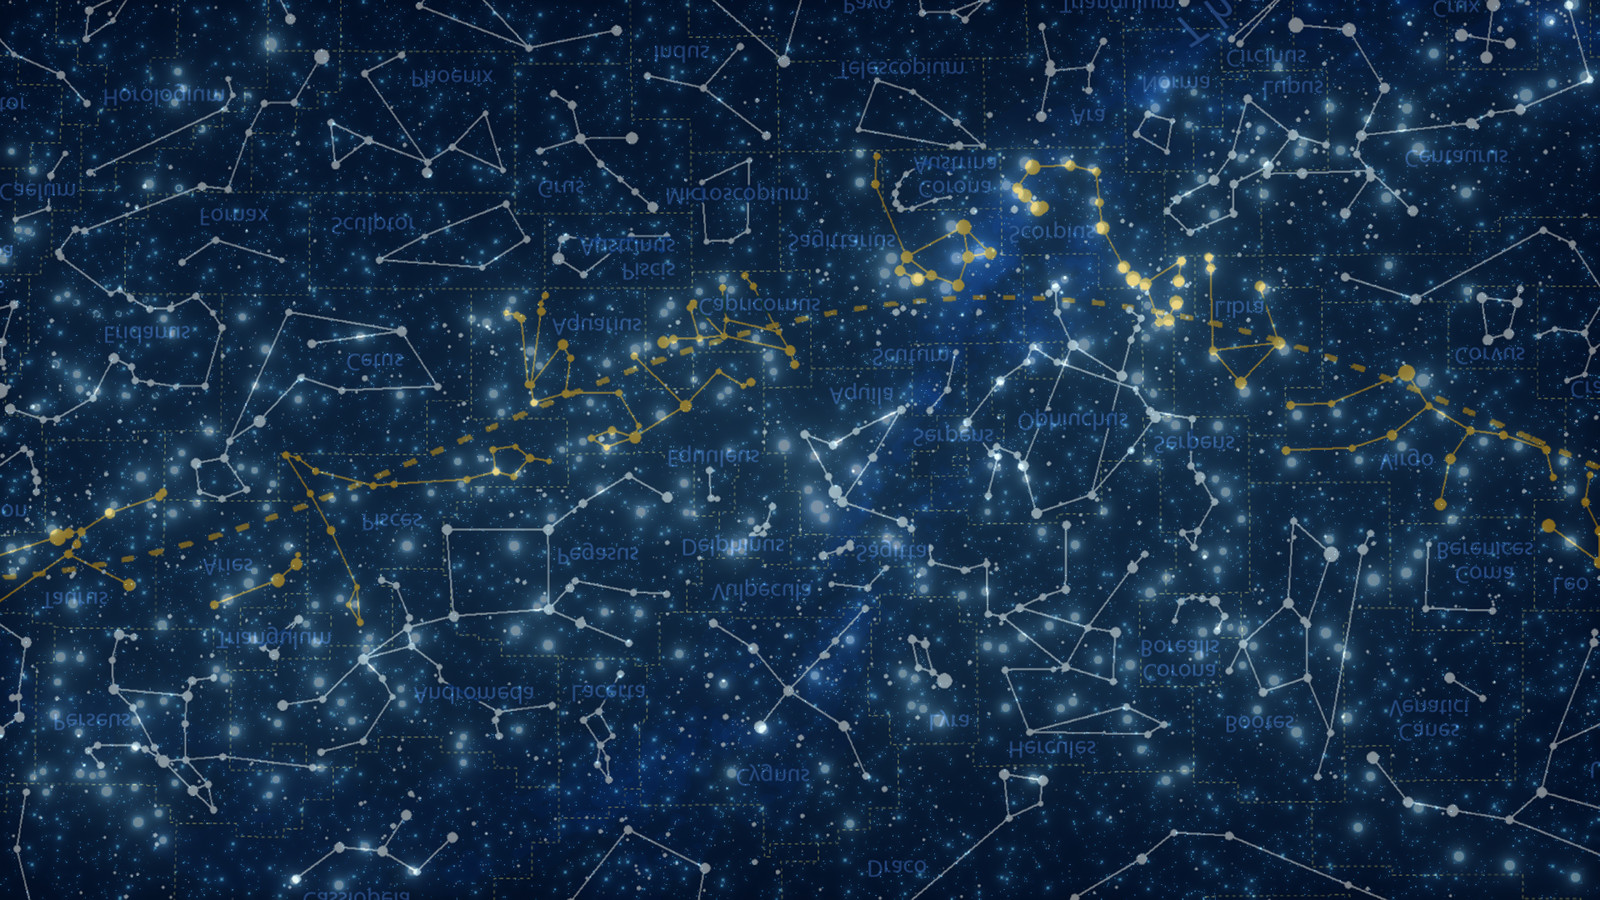 I tried to match the lights from the skies to a real constellation maps. It's turned upside down and some of them are a little bit off, but still, a lot of them are highly recognizables.